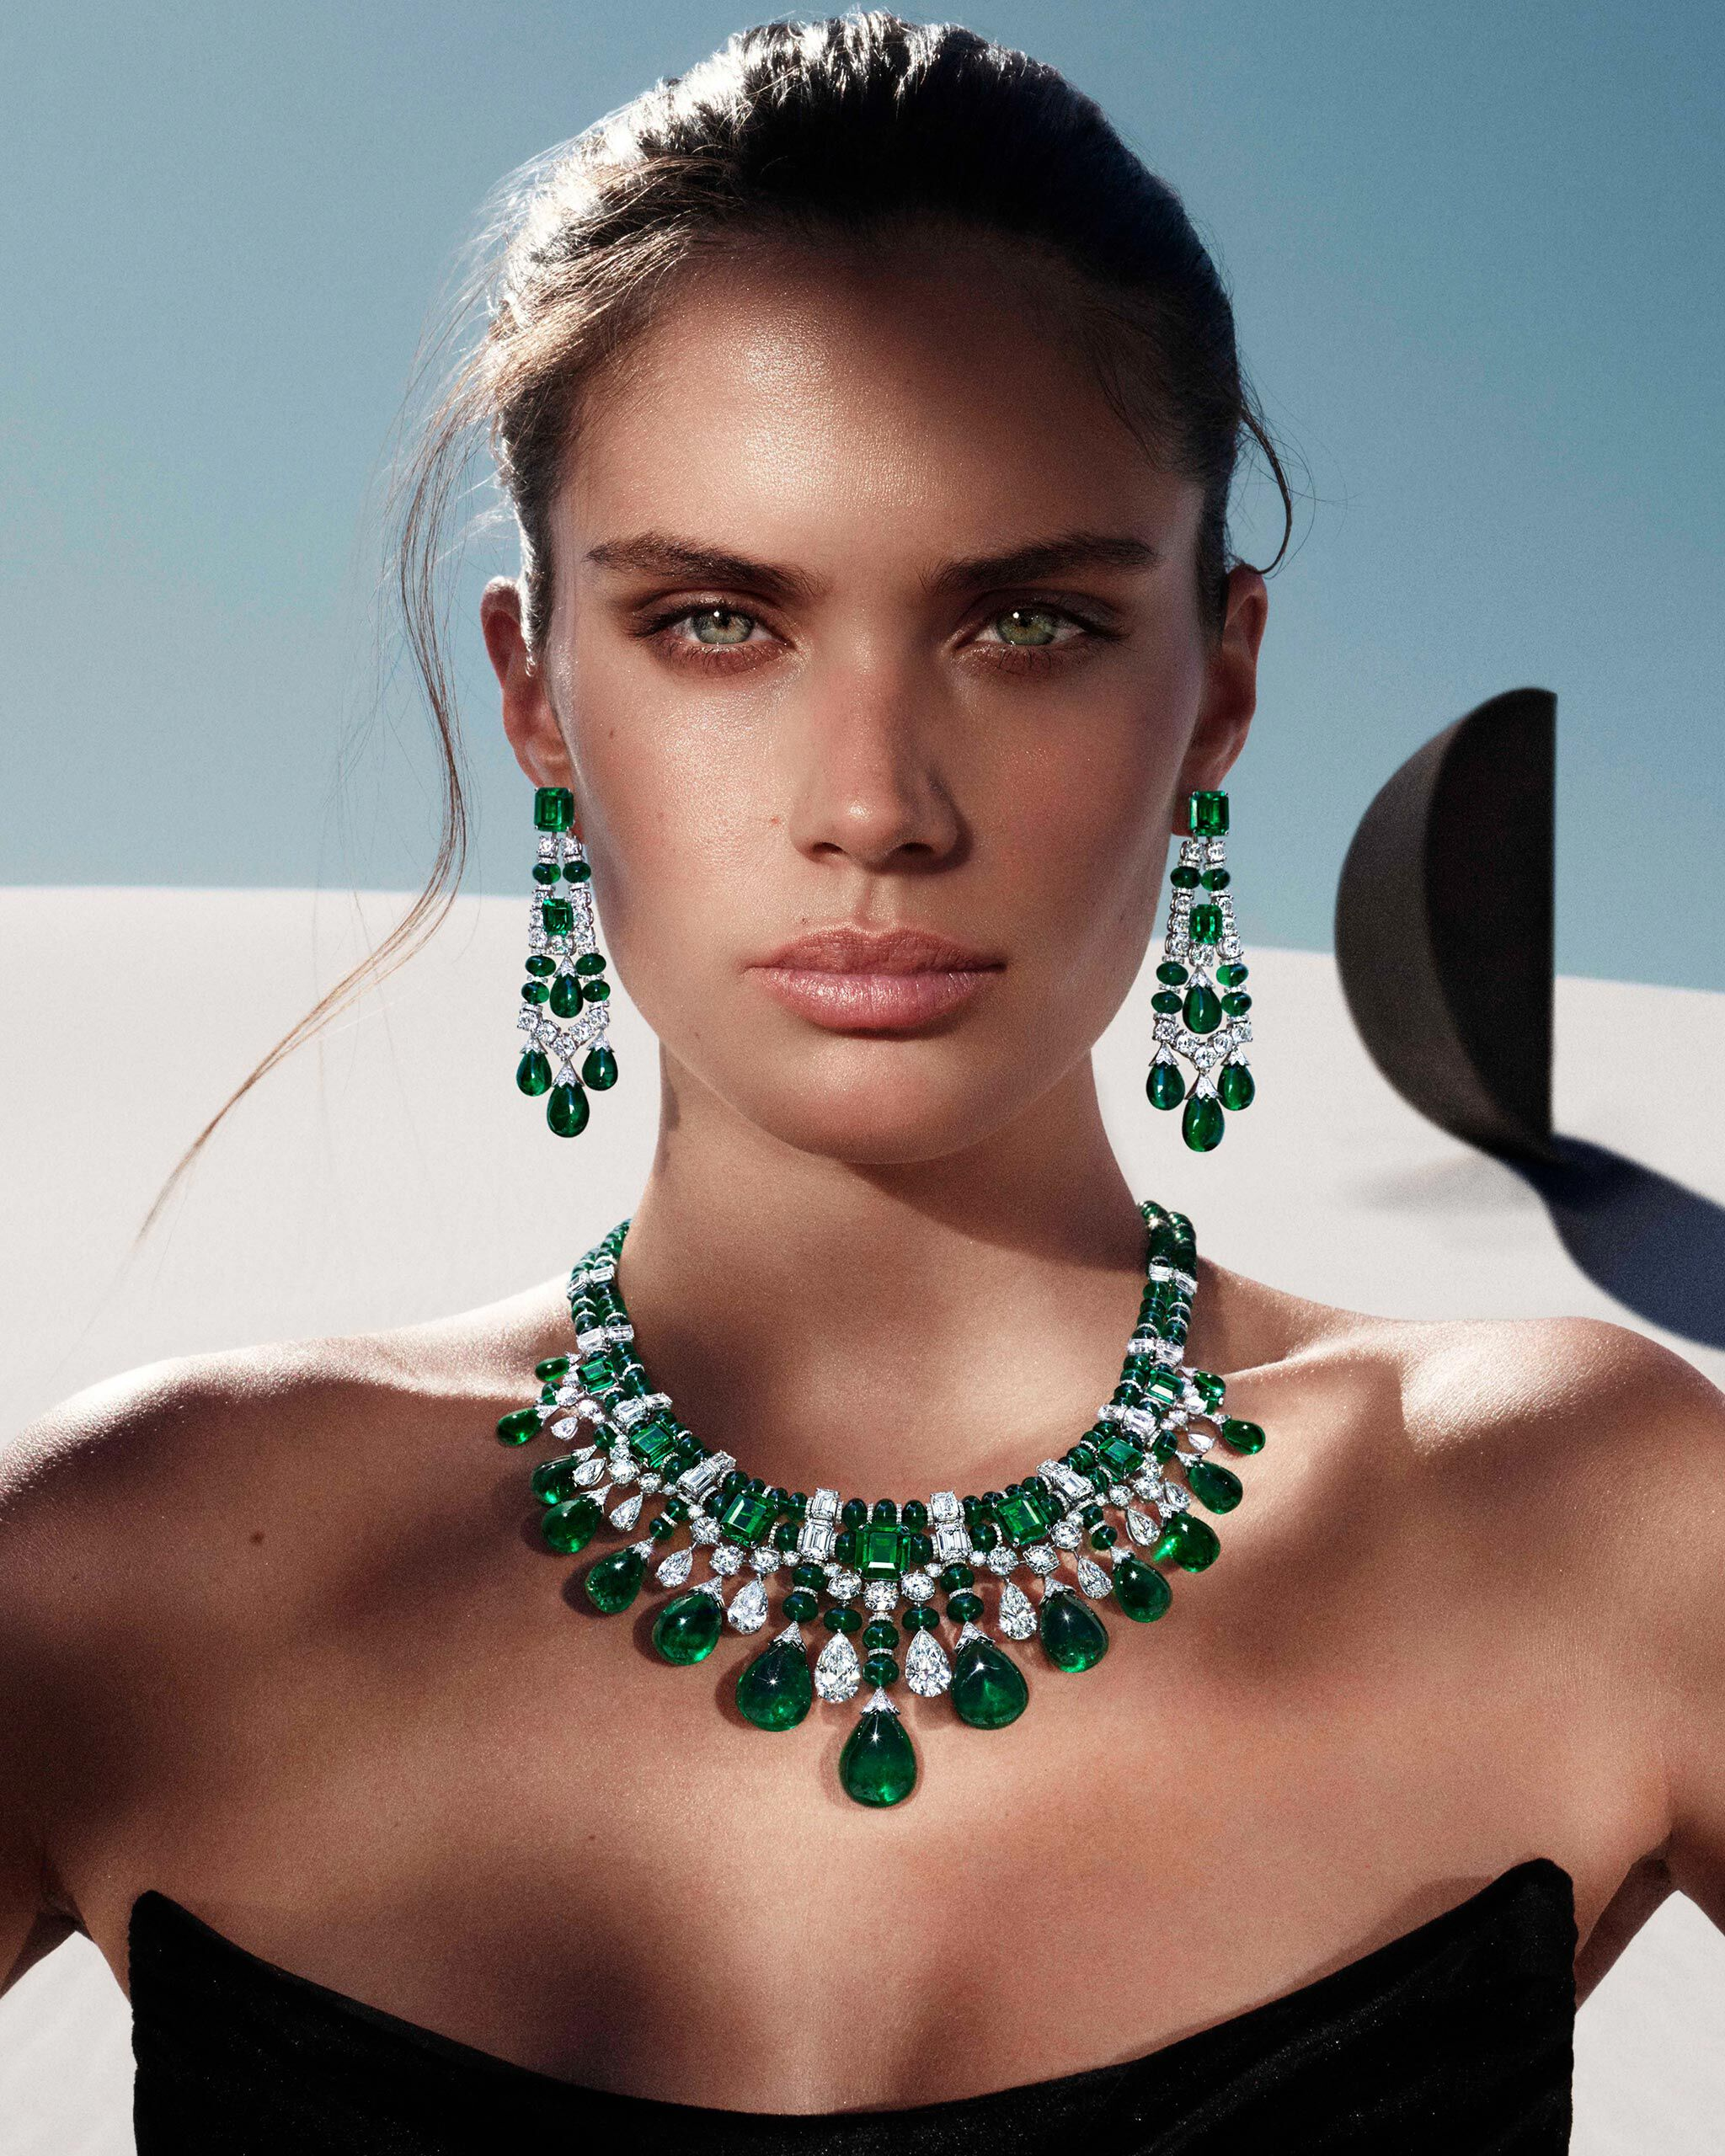 Model wears the Graff Tribal High Jewellery necklace and earrings